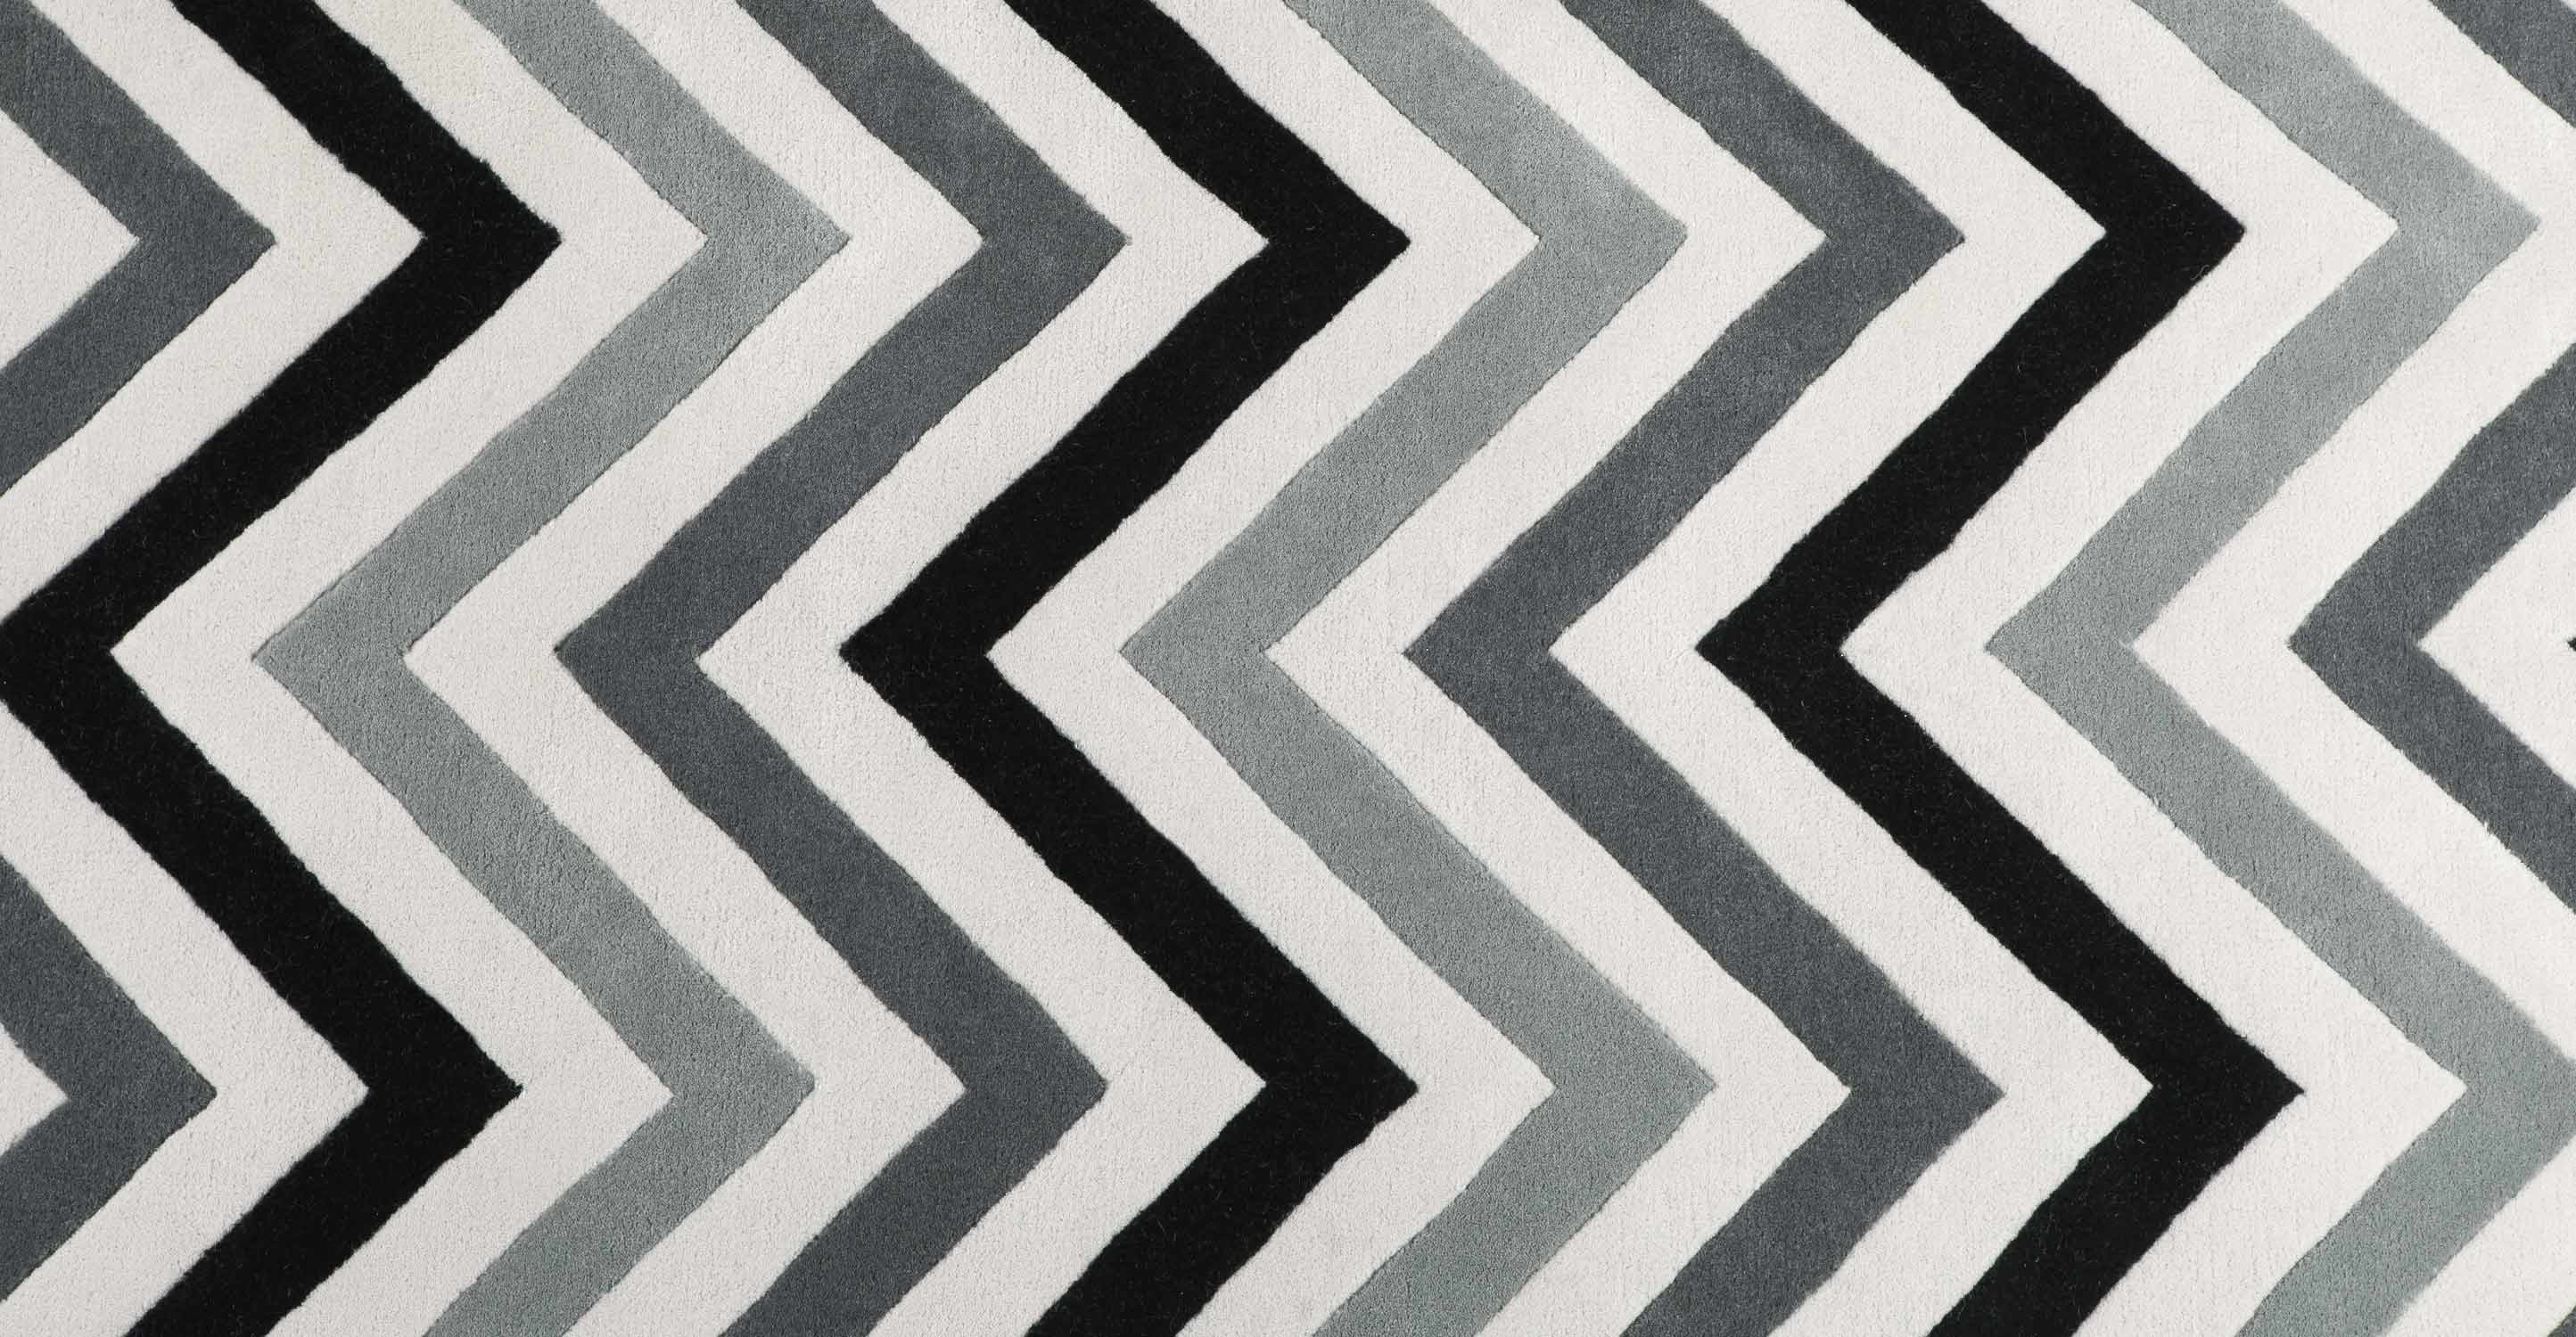 gray chevron rug - decor astonishing chevron rug for floor decoration ideas black and white